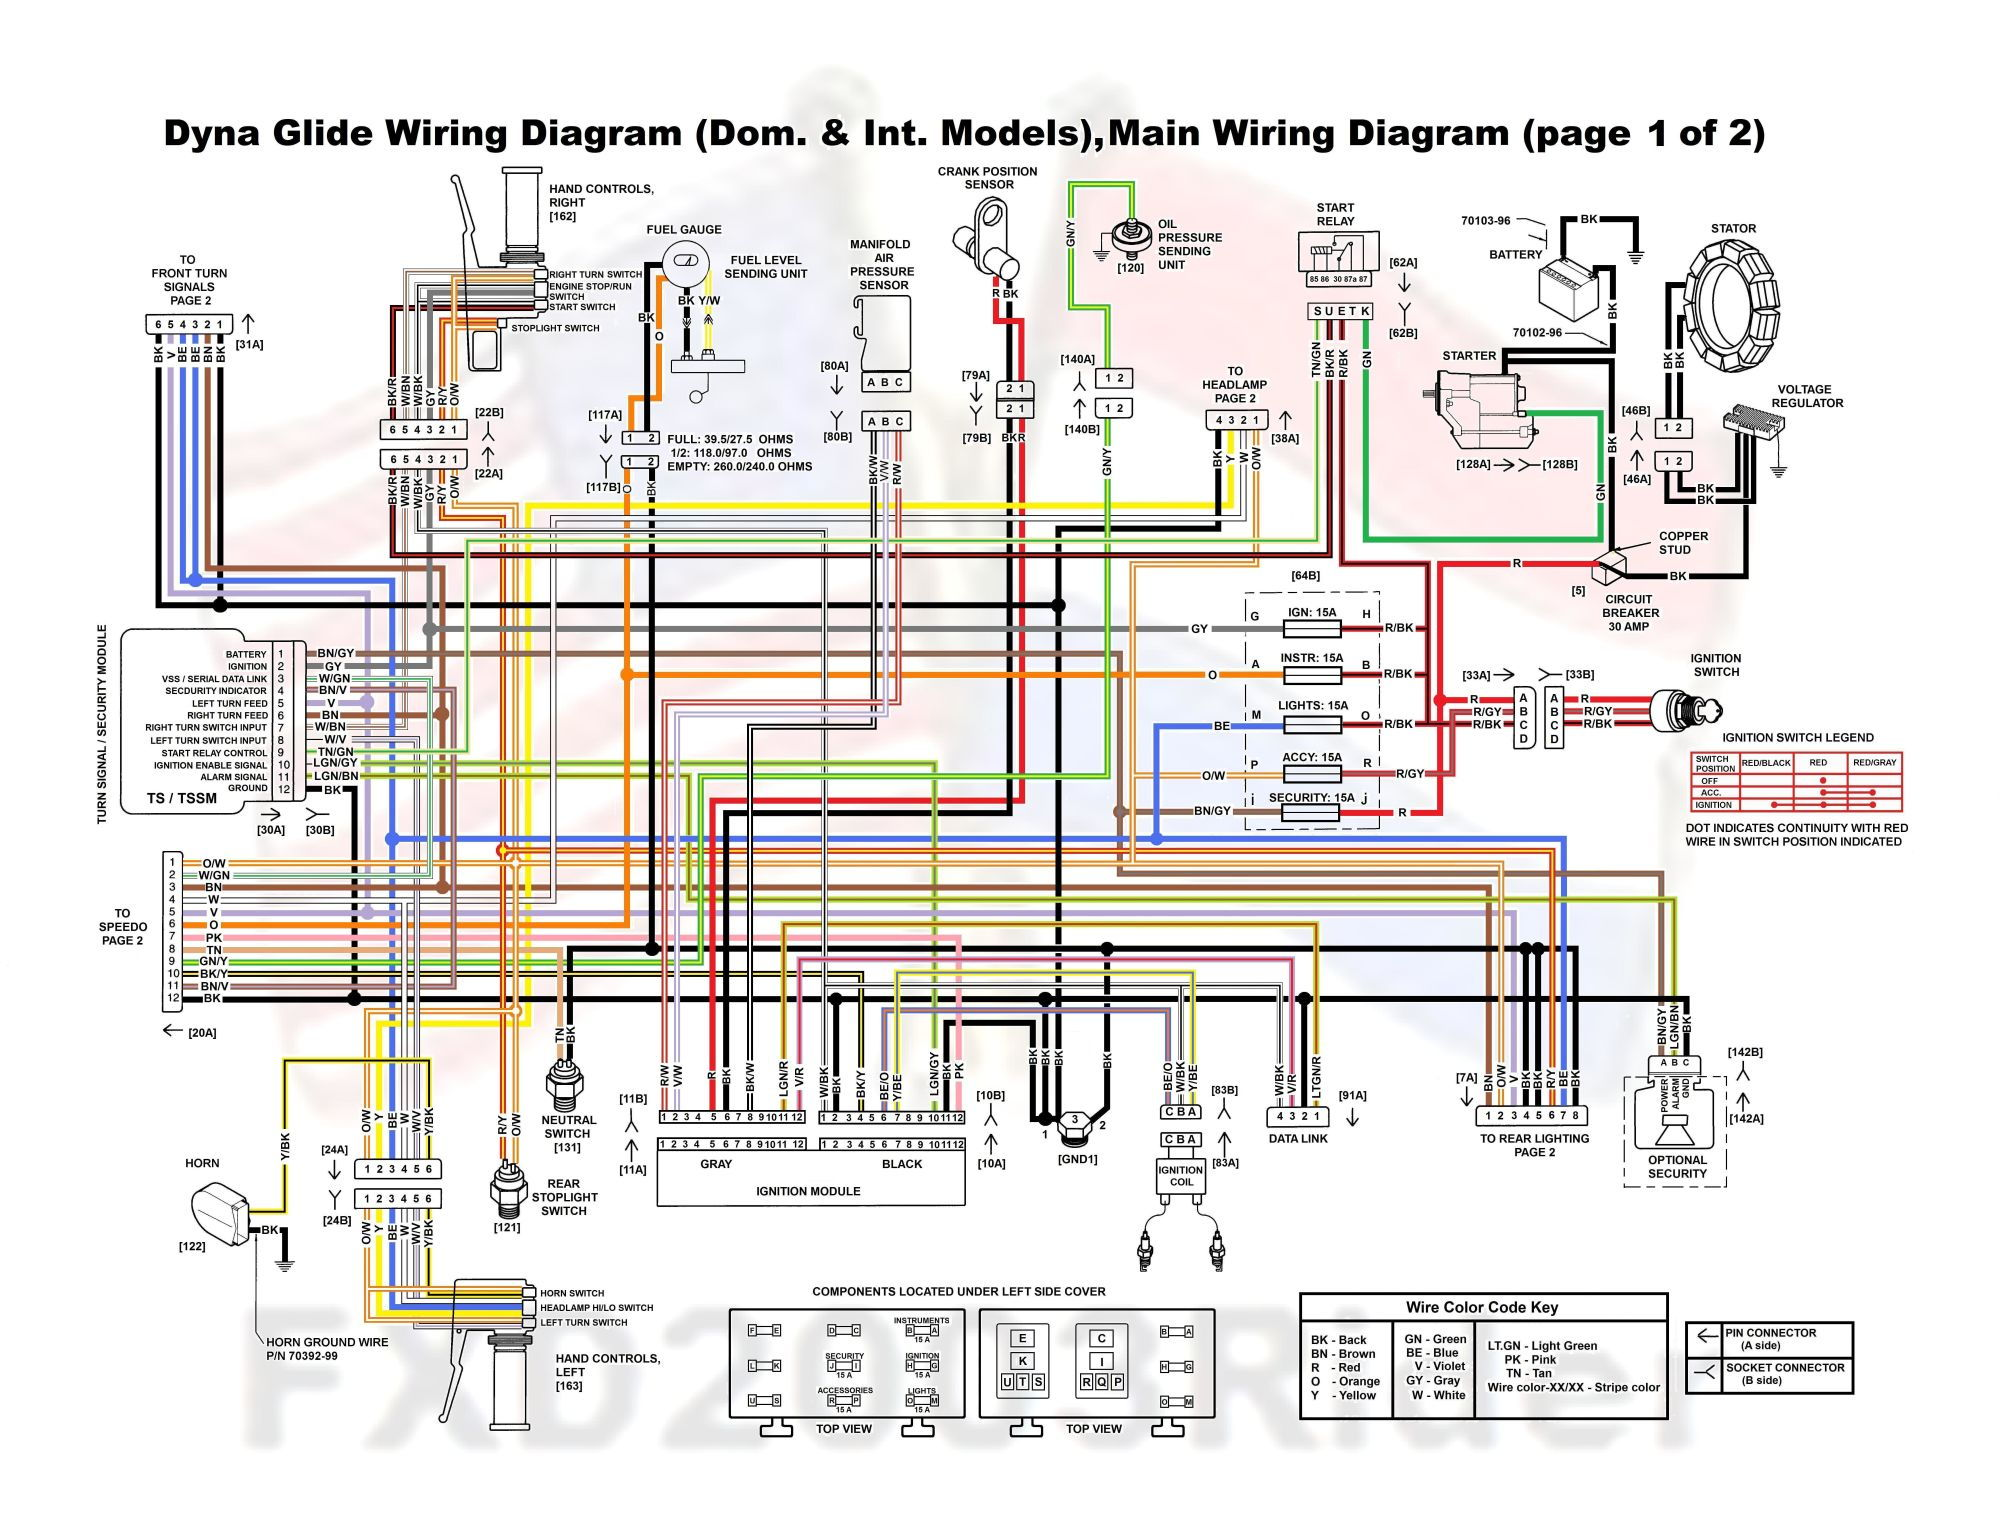 80 _kleur_en_wm_2003_dyna_glide_wiring_diagram_dom_int_models_main_wiring_diagram_page_1_of_2_89aa5bfbfe3bdf104c1e84165cbae702feebd8cc_970b11171da5e76f156265415c7fb81c65f2e08a need wiring help harley davidson forums wiring diagram for 1992 harley davidson dyna at eliteediting.co